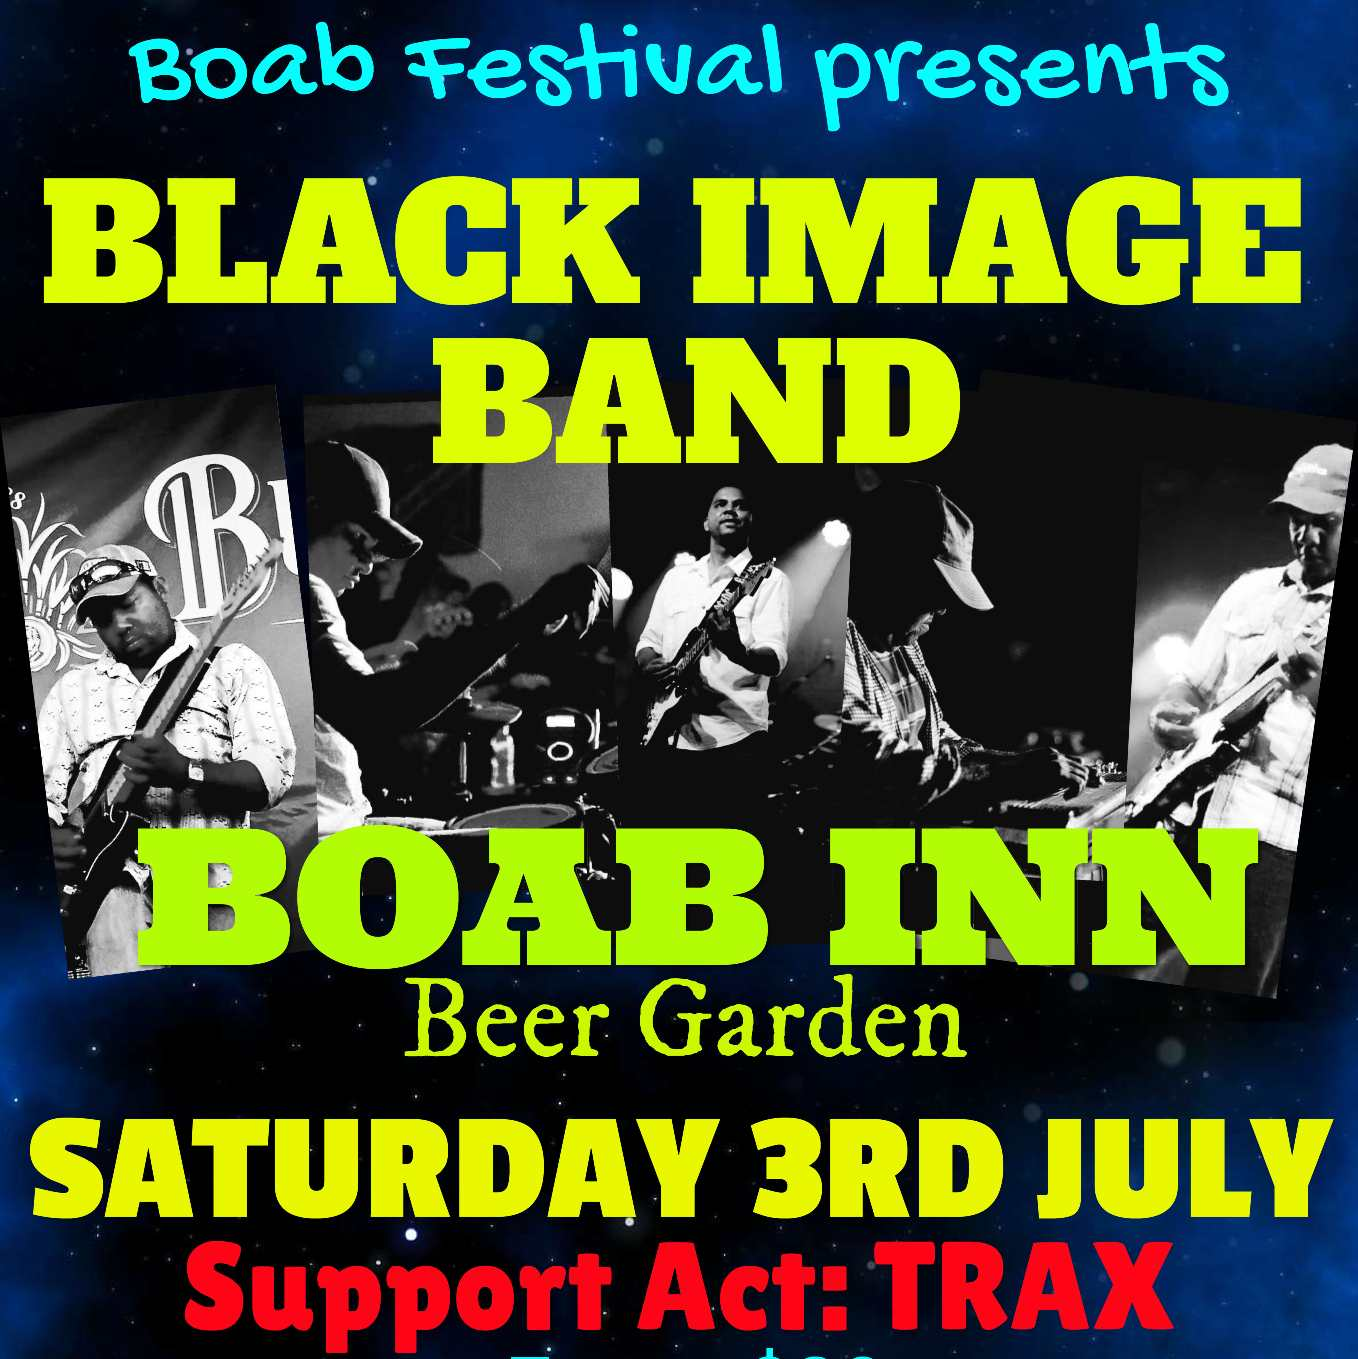 Black Image Band Live in Derby